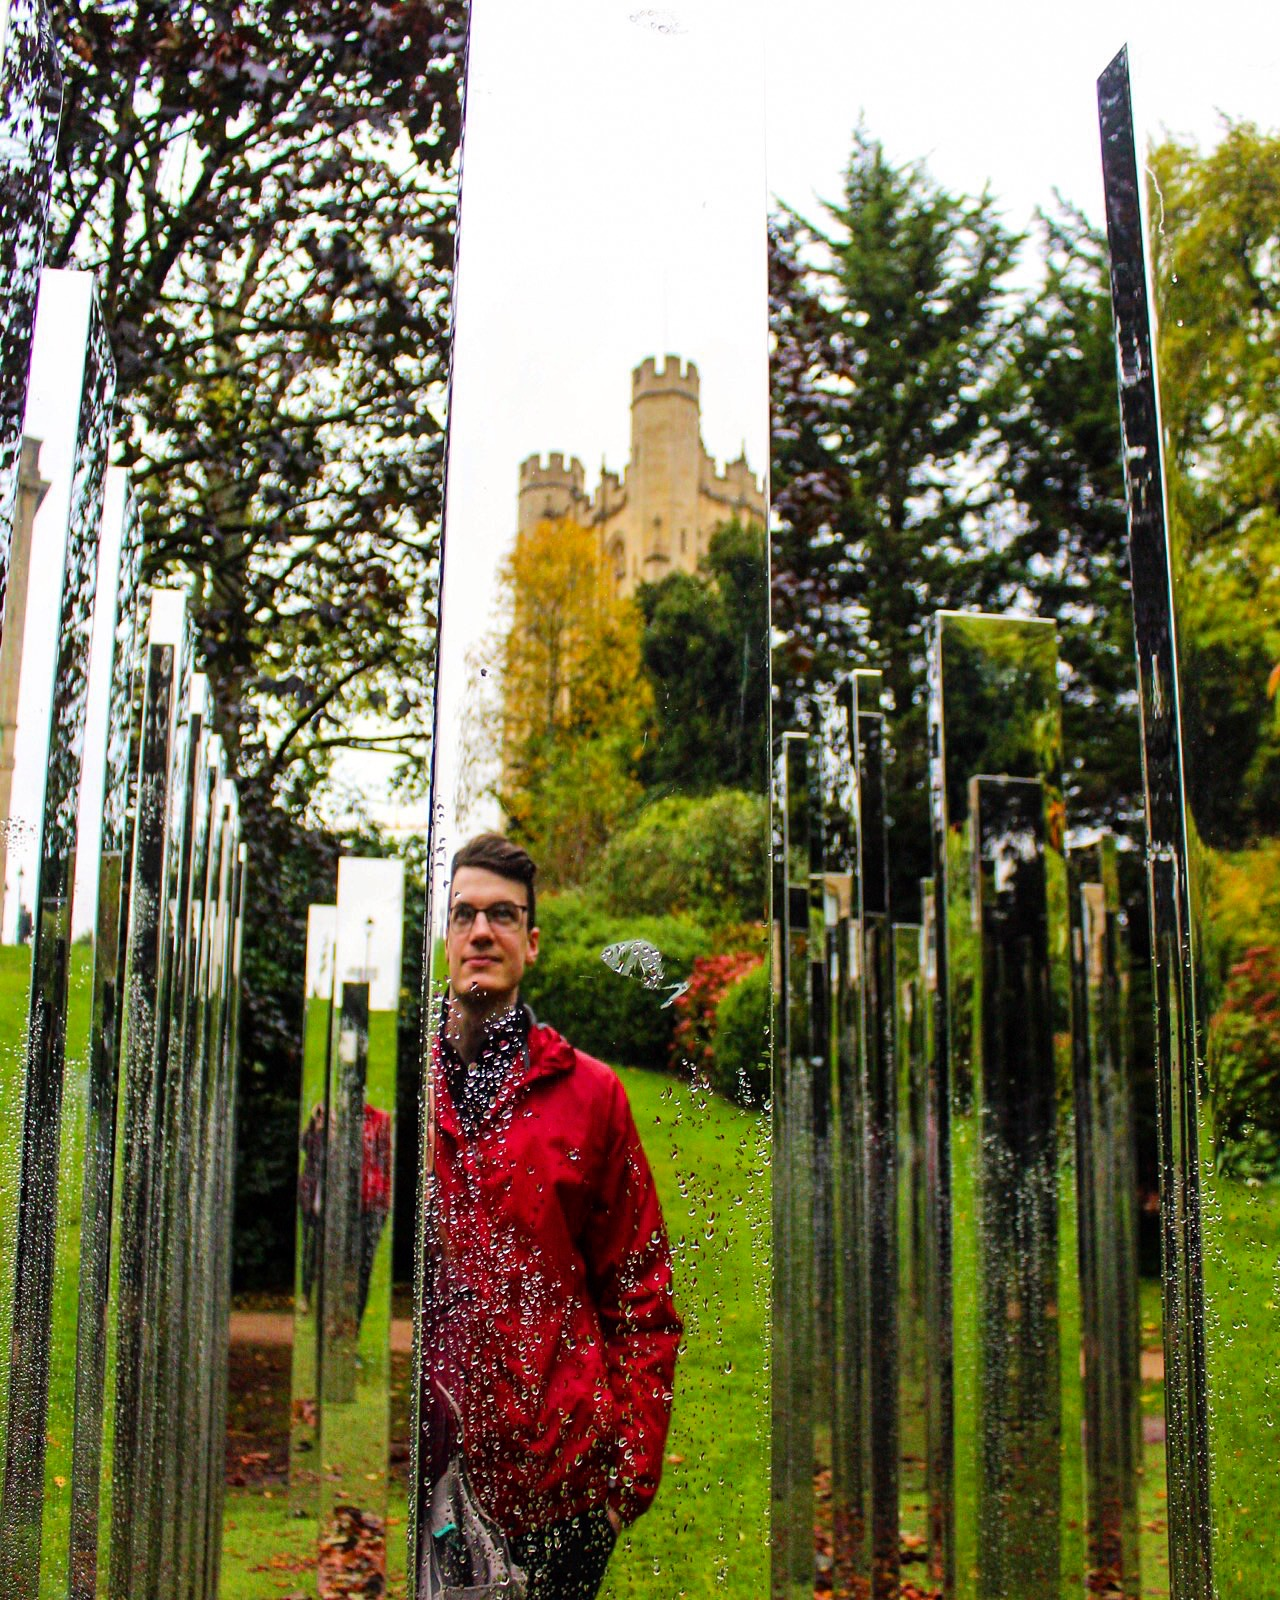 Visit Bristol In One Day Trip - Explore Bristol's harbourside, famous landmarks, and beautiful countryside for an immersive taste of history, world exploration, and engineering! Visit Royal Fort Gardens to find the mirror maze.